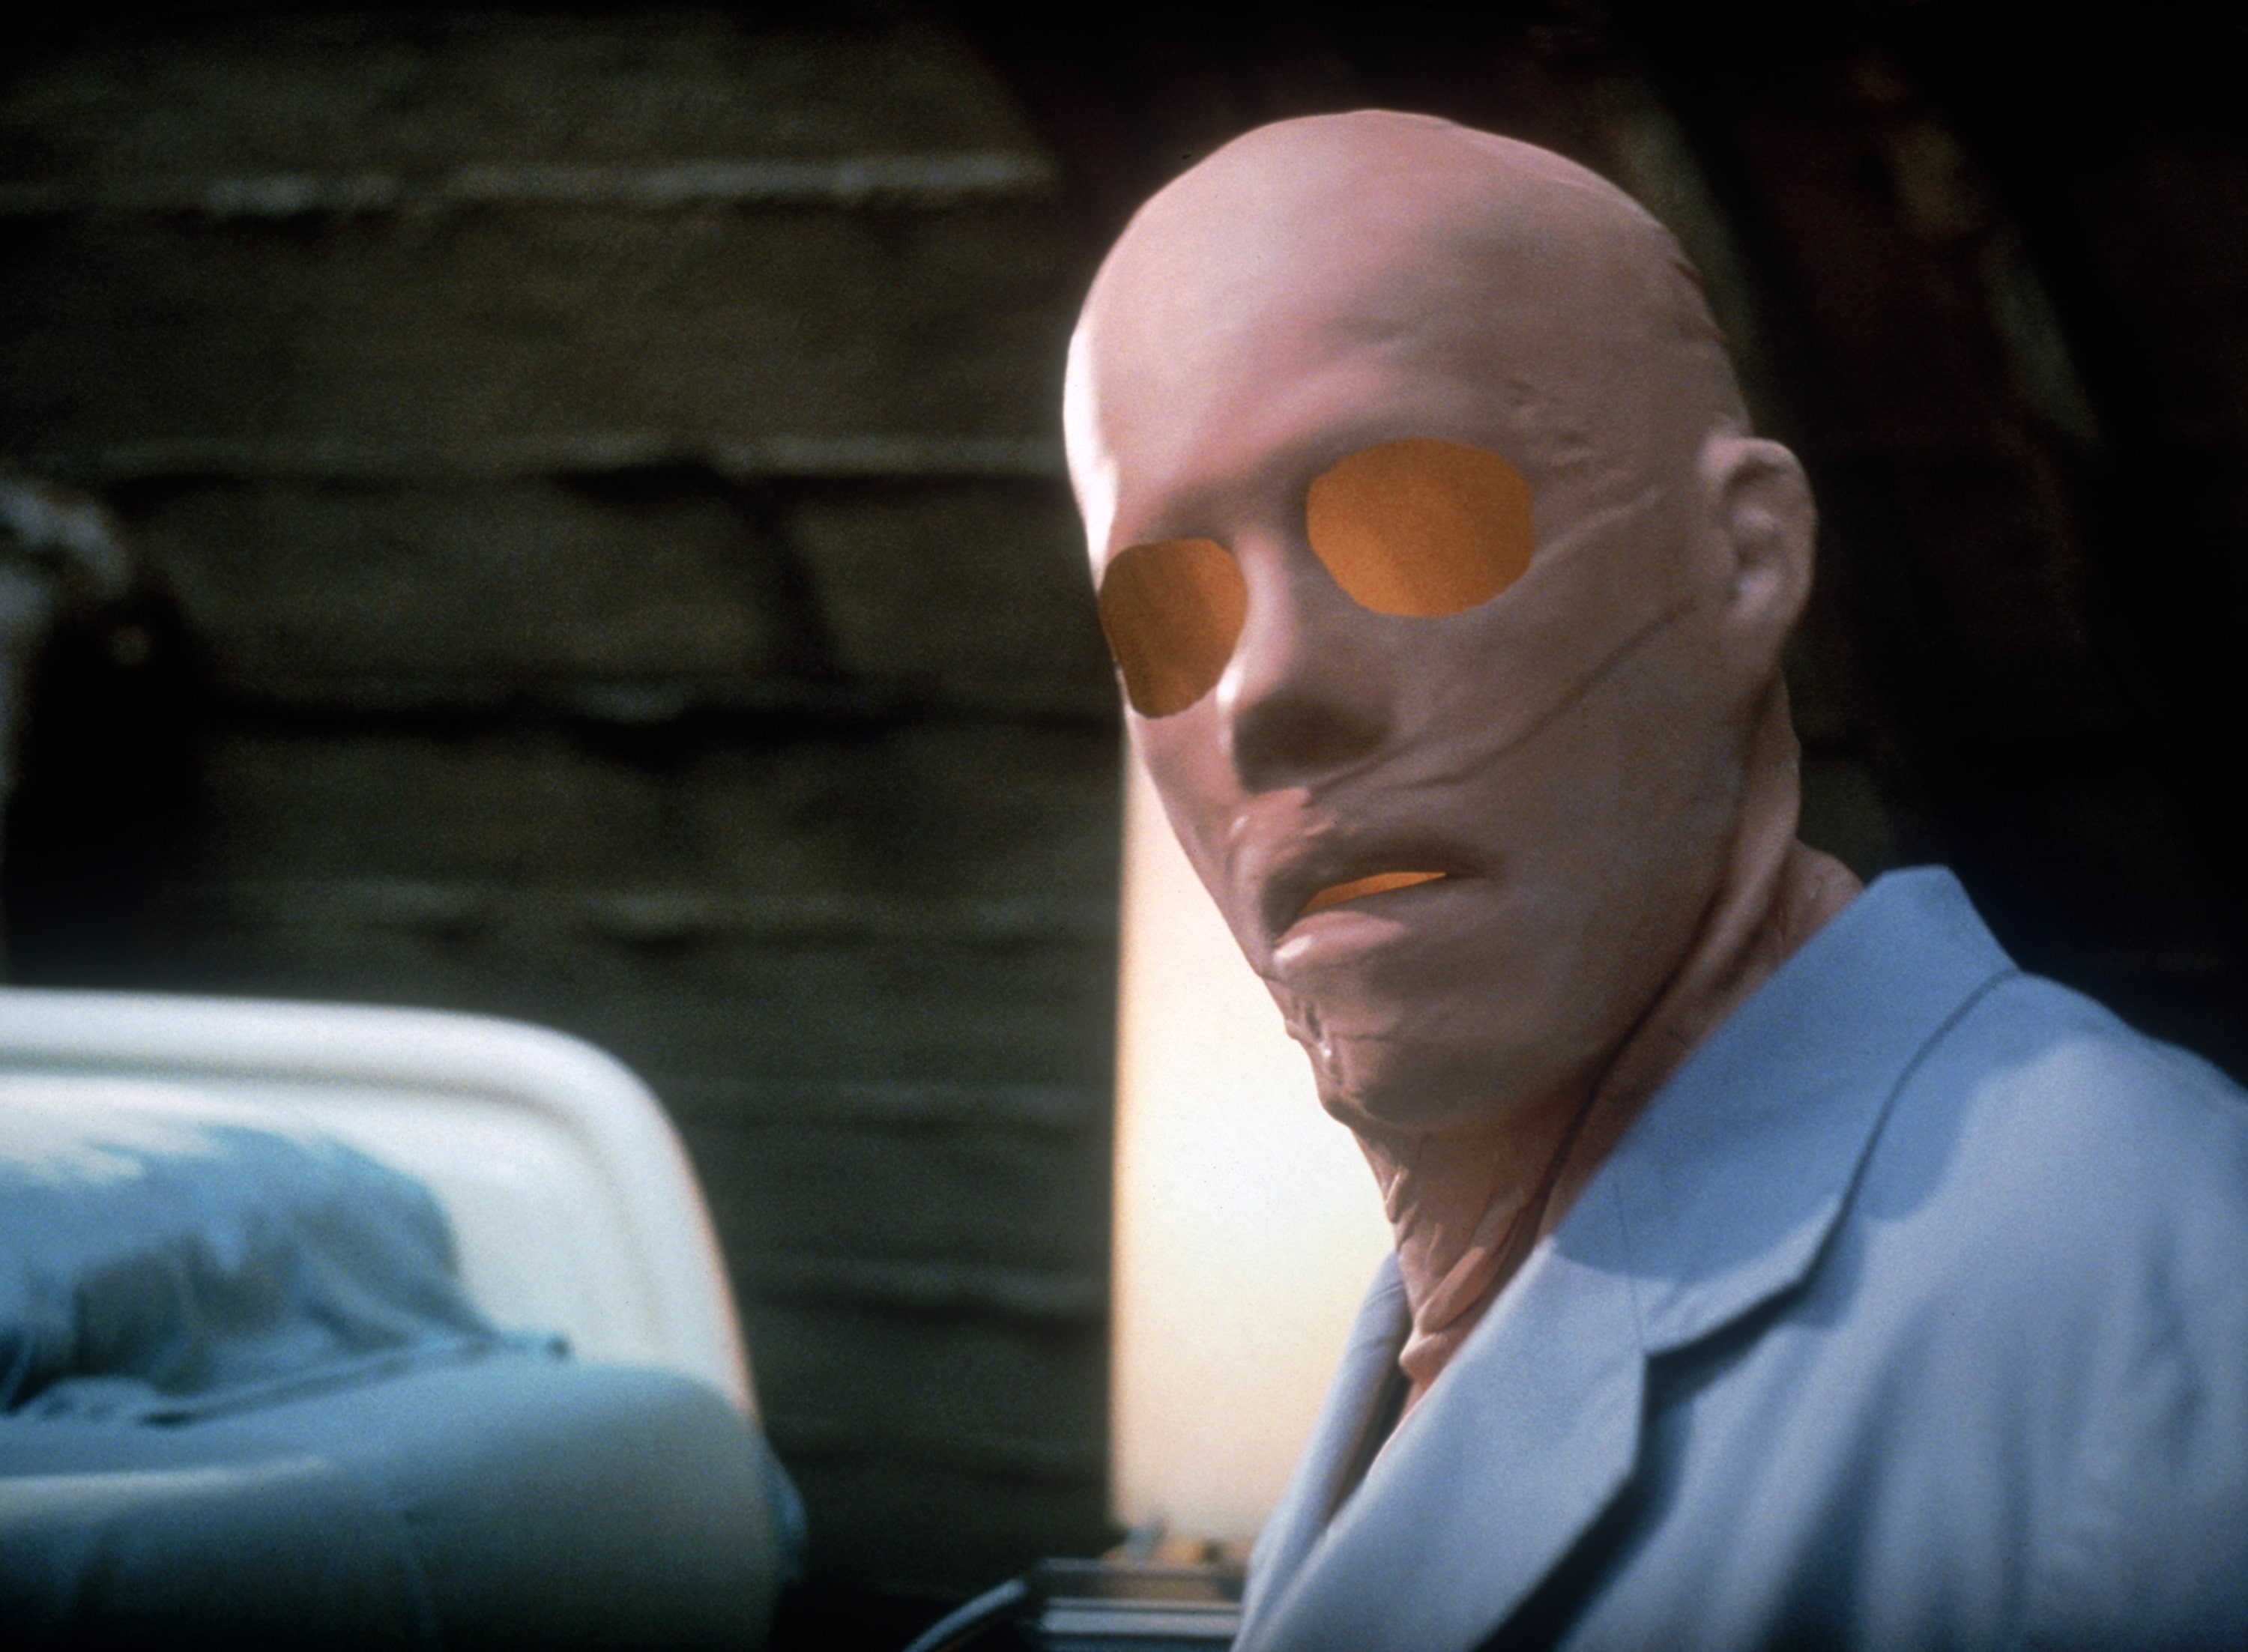 [News] HOLLOW MAN and HOLLOW MAN II on Special Edition UK Blu-ray May 27